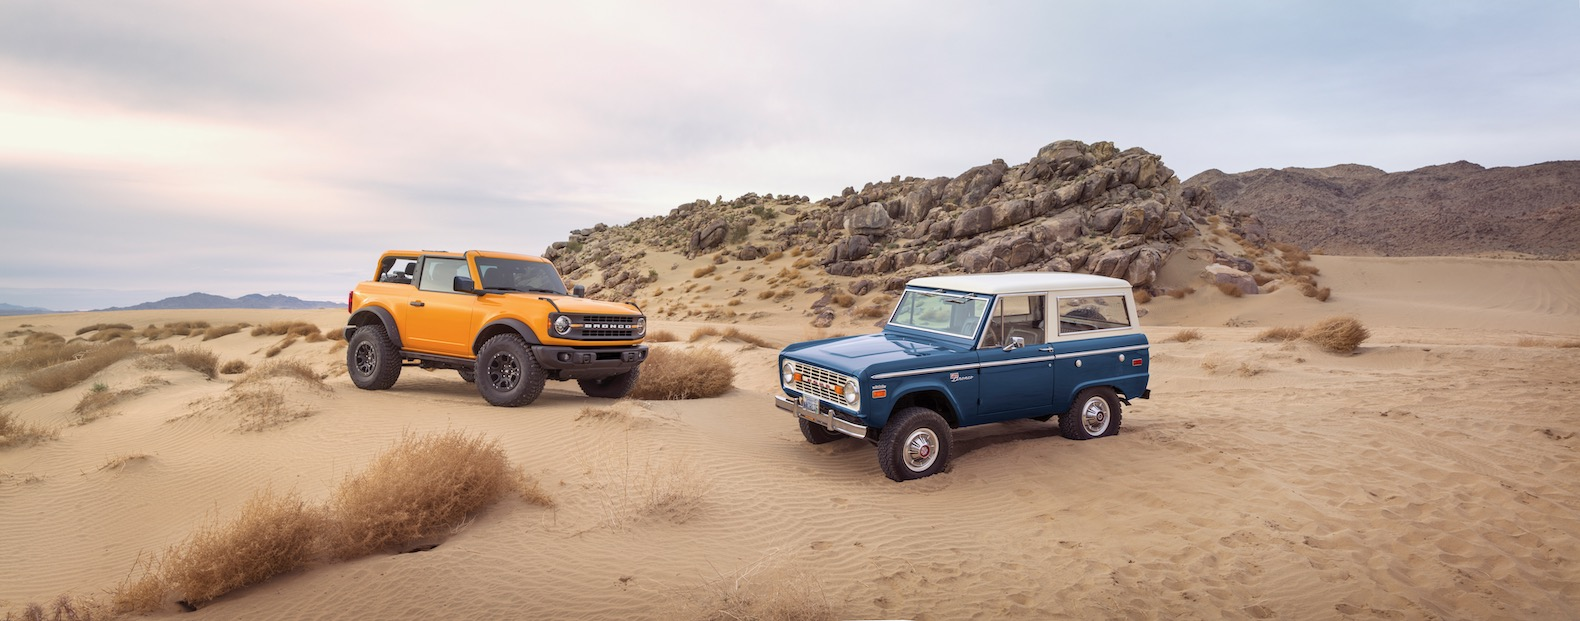 2021 Ford Bronco First Edition is sold out | The Torque Report